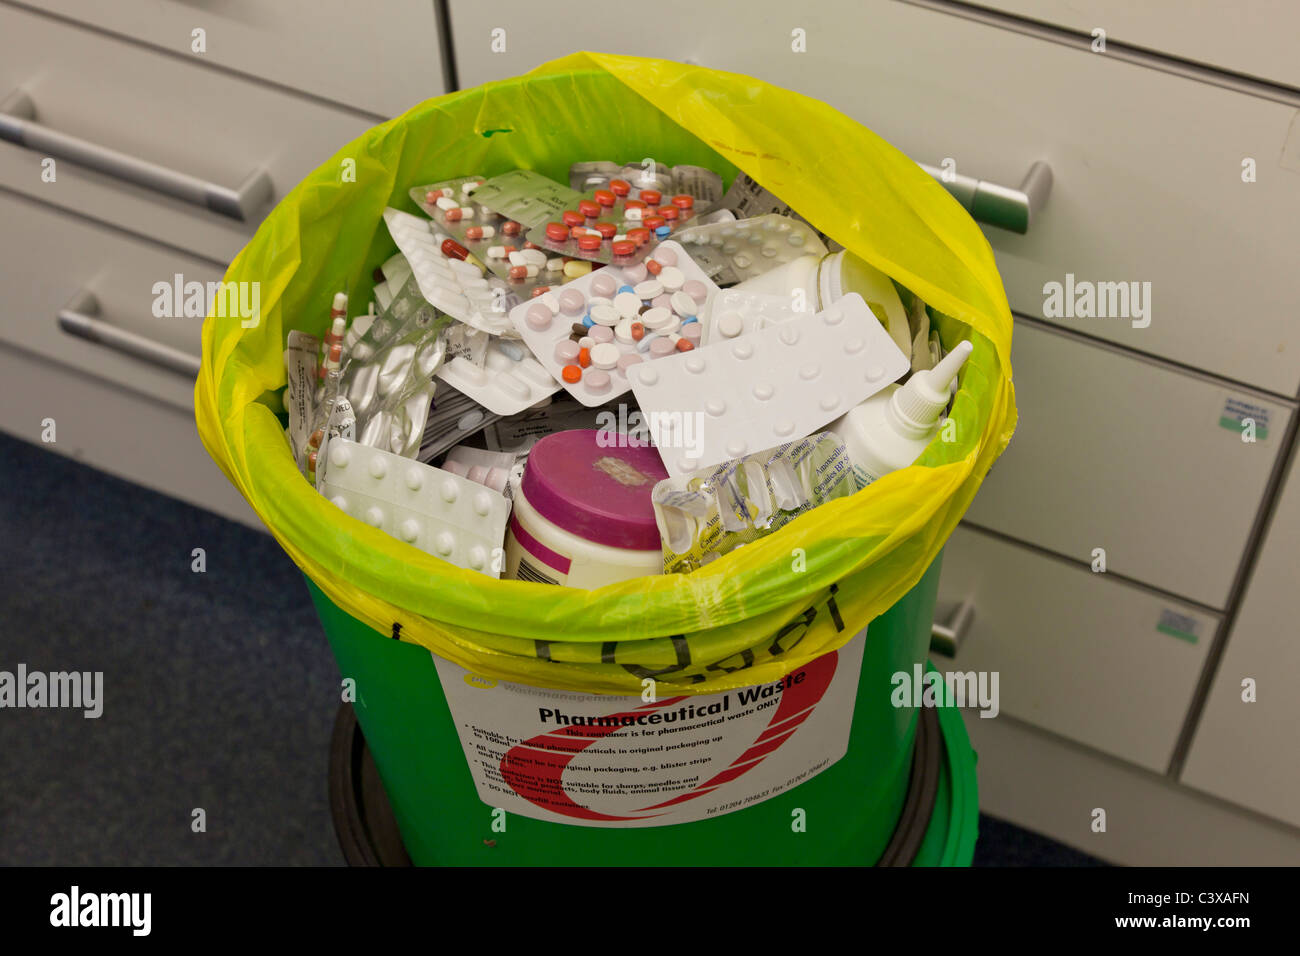 Pharmaceutical drugs for disposal in special DOOP bins after being returned from patients as unwanted or not needed - Stock Image